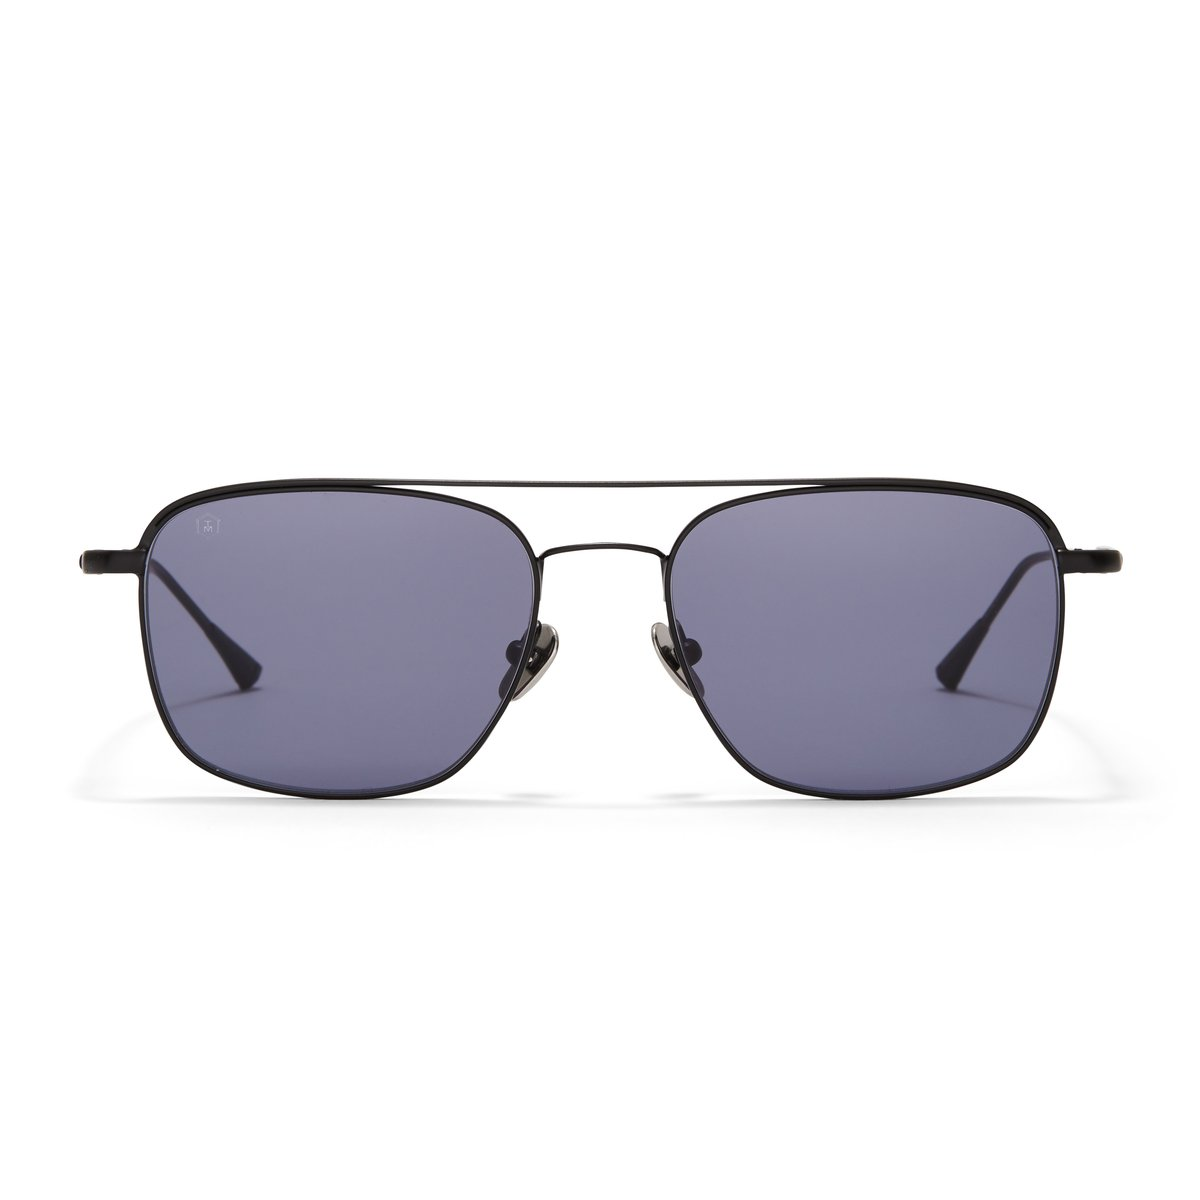 Taylor Morris Elgin Sunglasses, Non-prescription